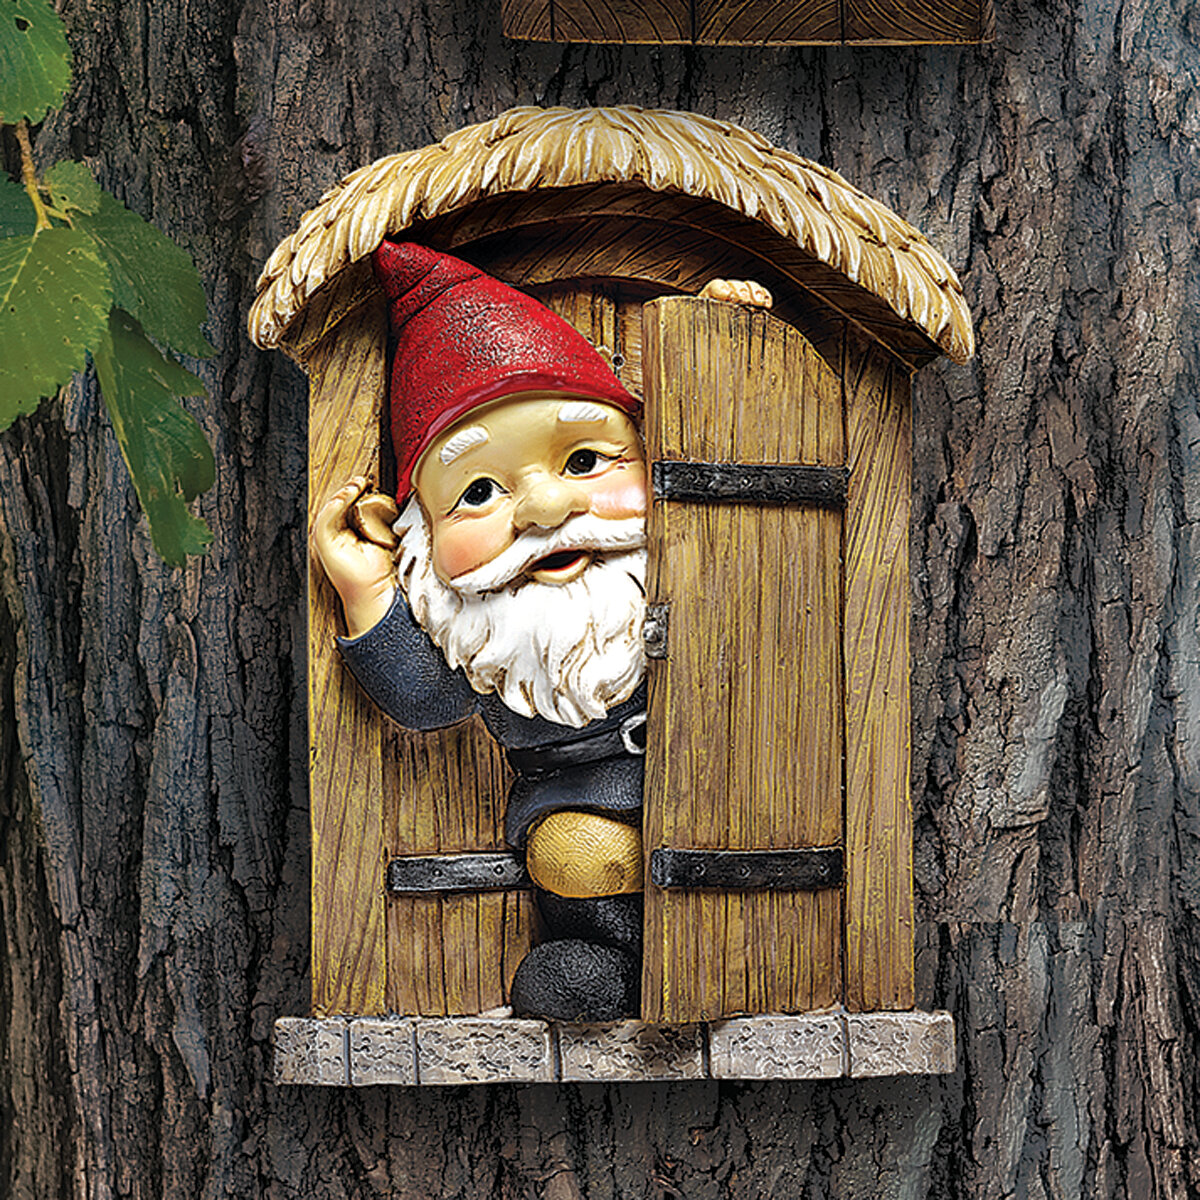 Design Toscano Knothole Door Gnome Garden Welcome Tree Wall Decor U0026 Reviews  | Wayfair